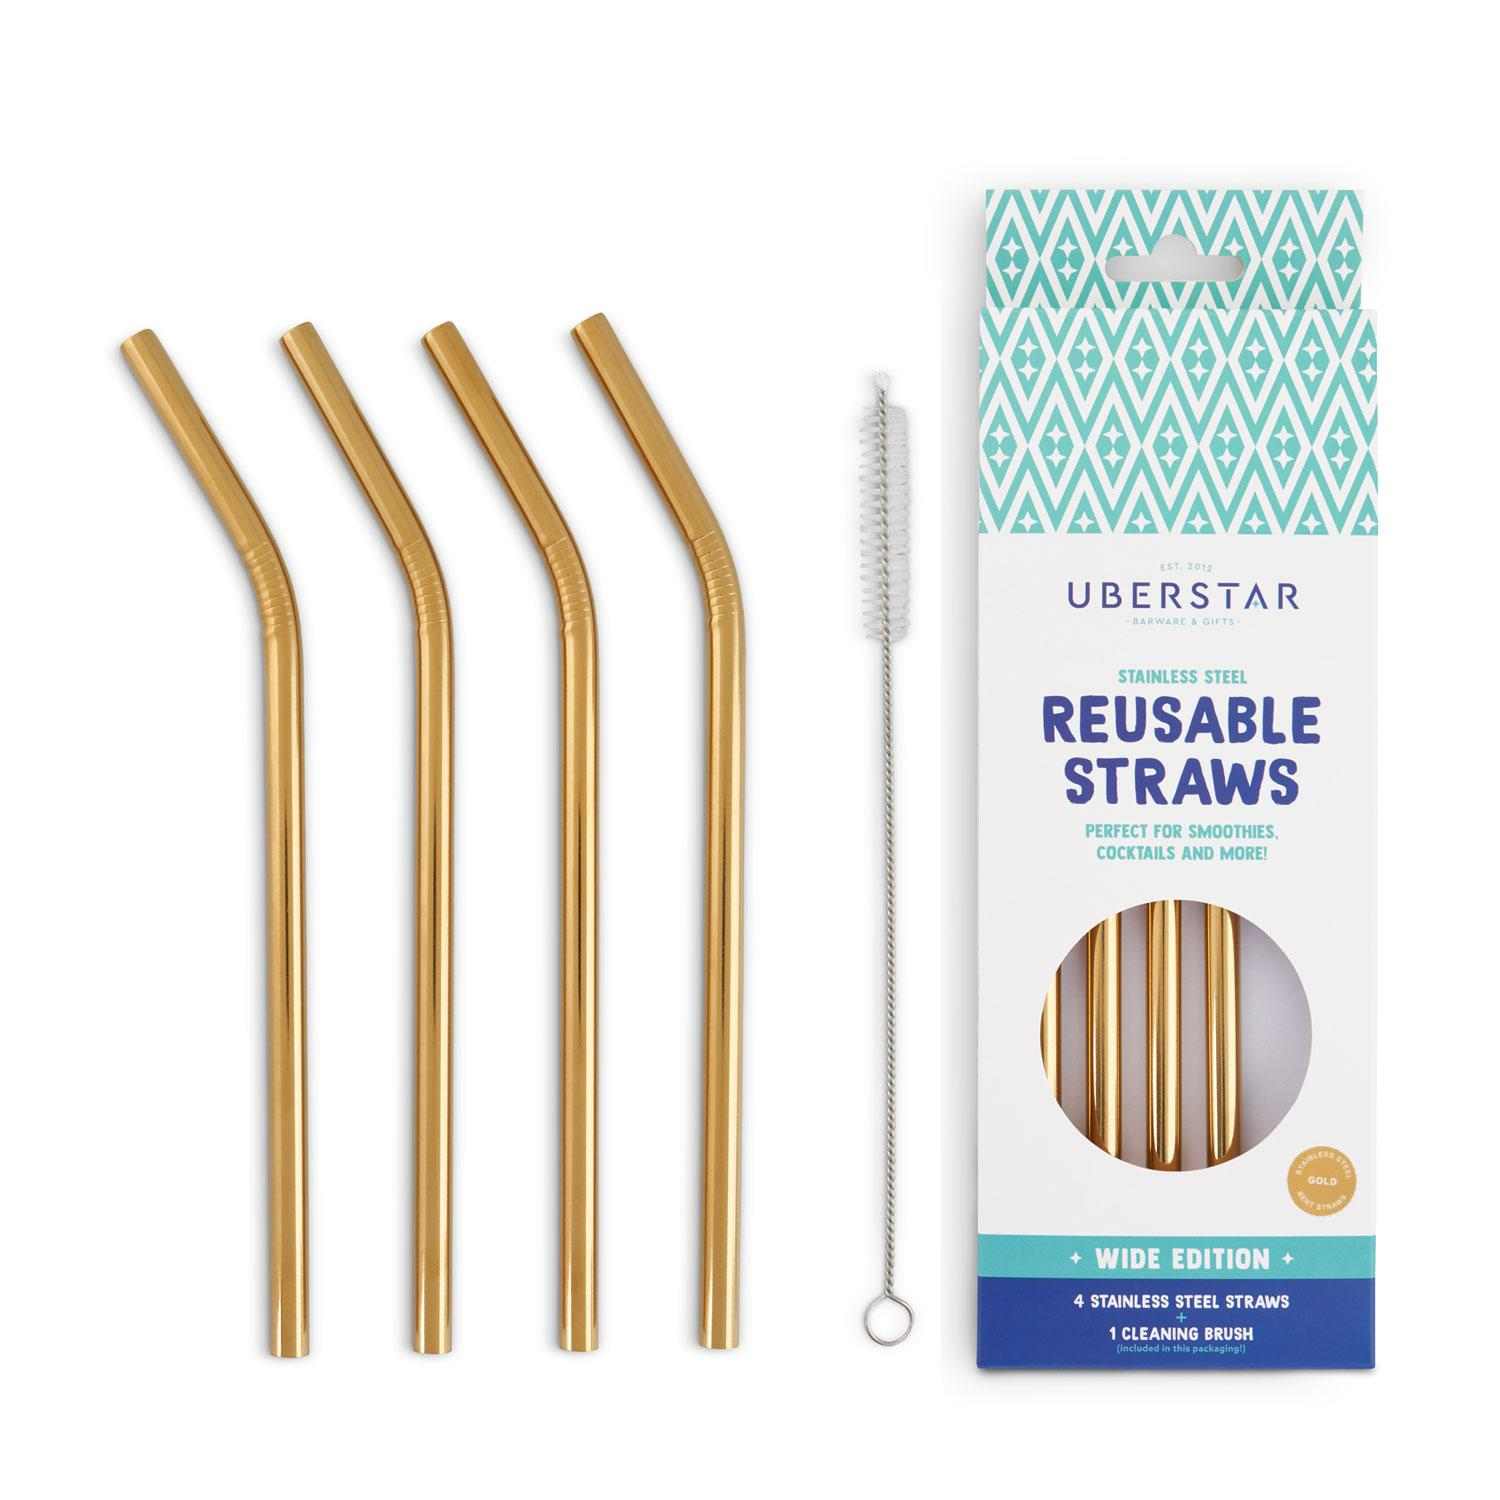 Uberstar Reusable Straws (4 Pack) - Gold